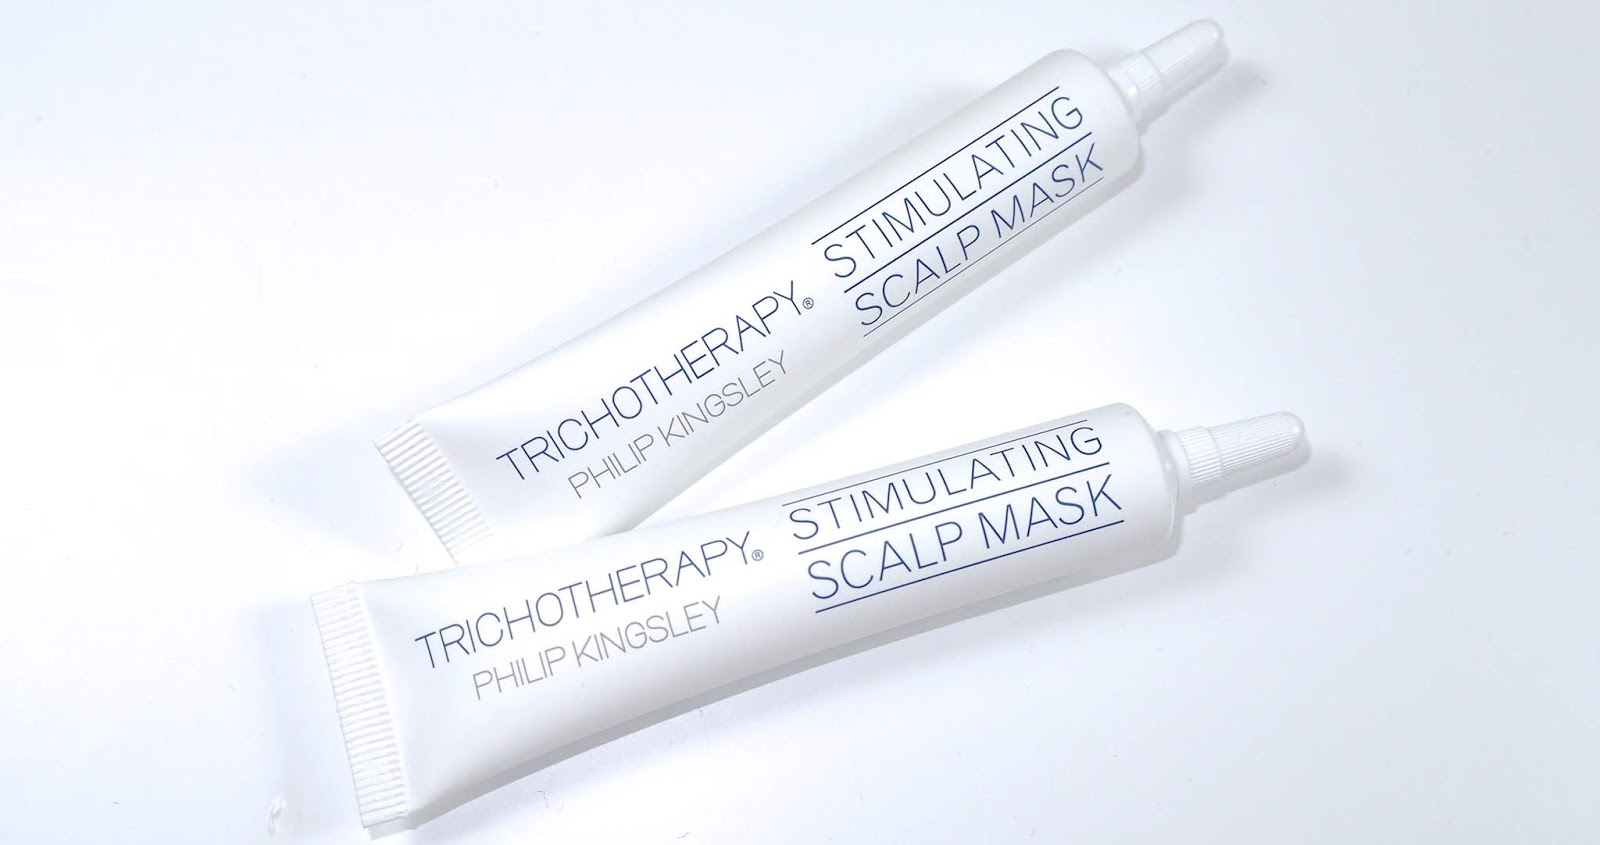 Philip Kingsley Trichotherapy Stimulating Scalp Mask